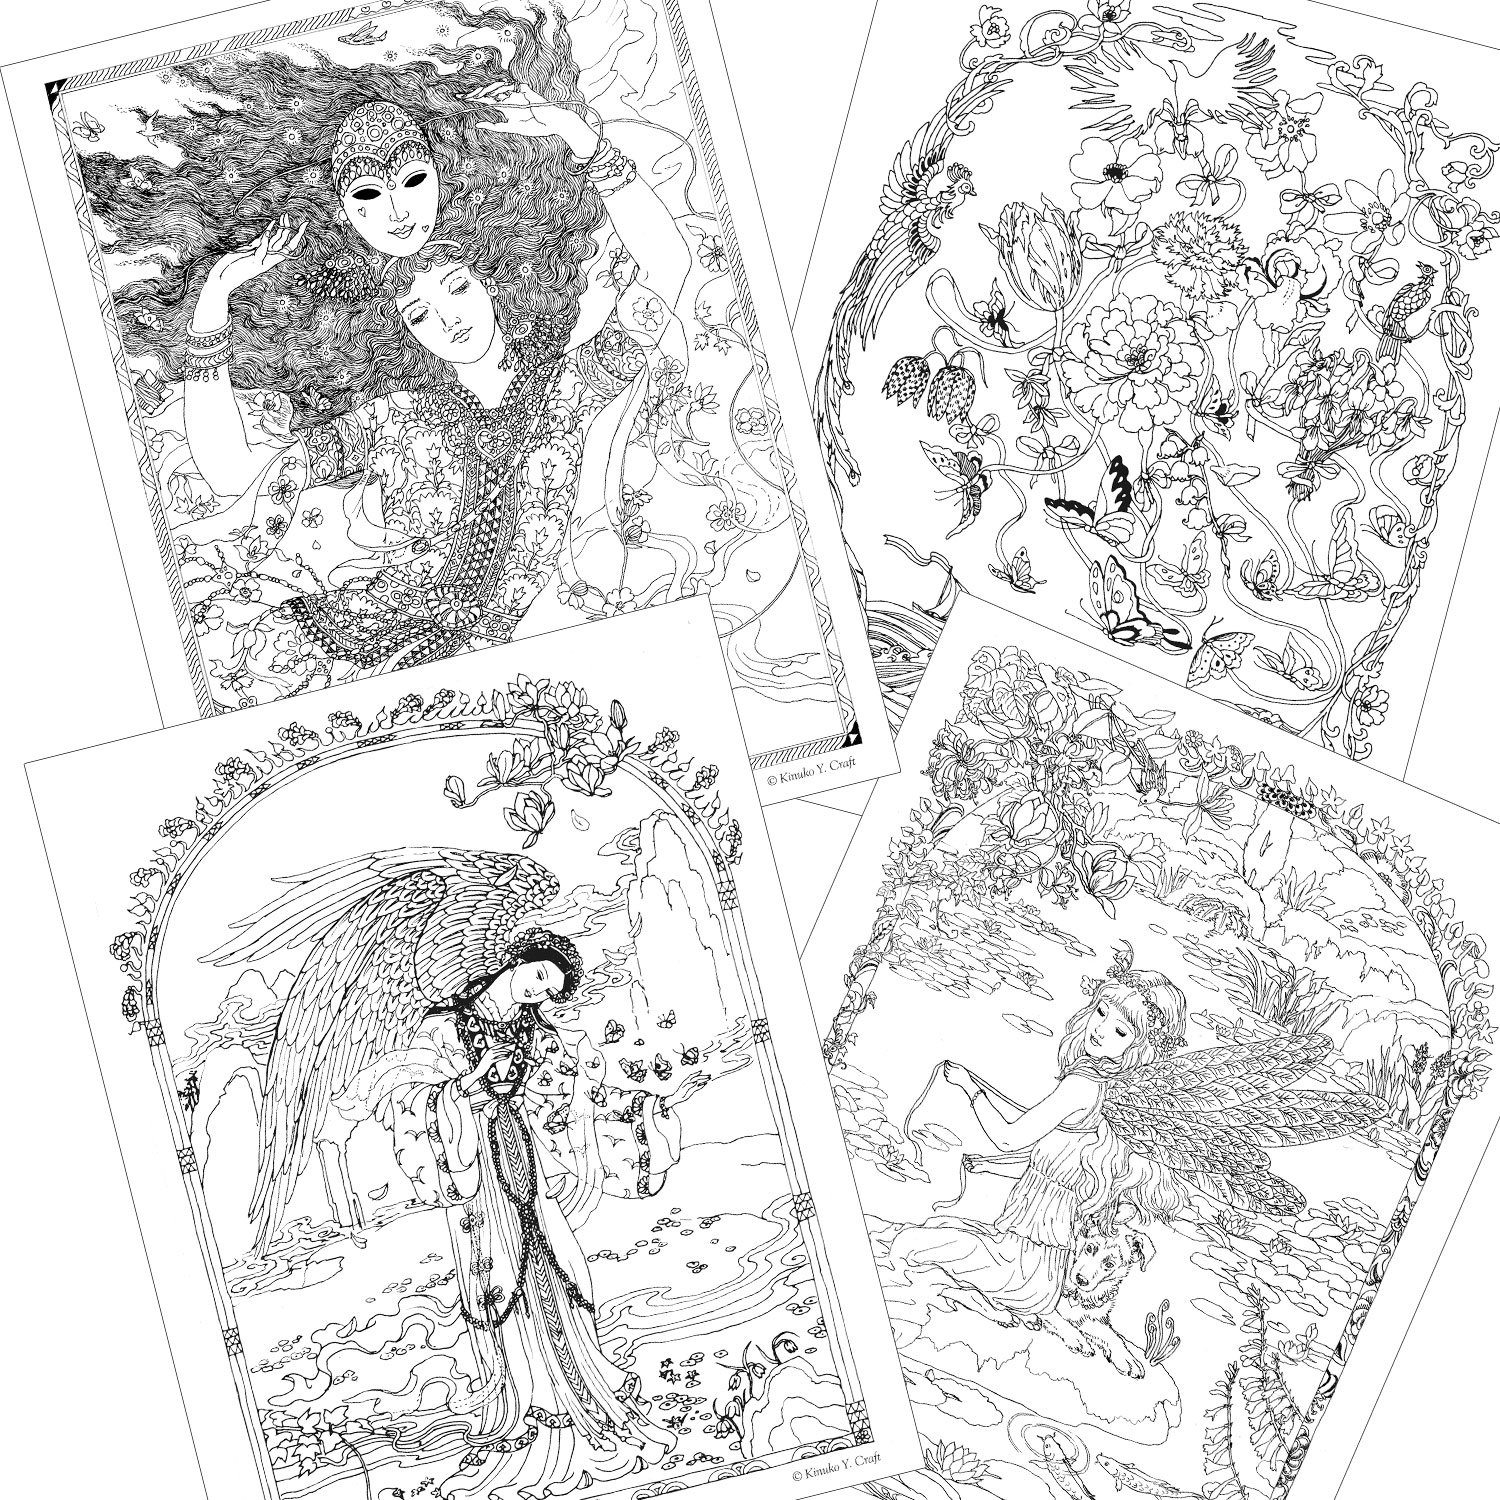 Amazon.com: Myth & Magic: An Enchanted Fantasy Coloring Book by ...